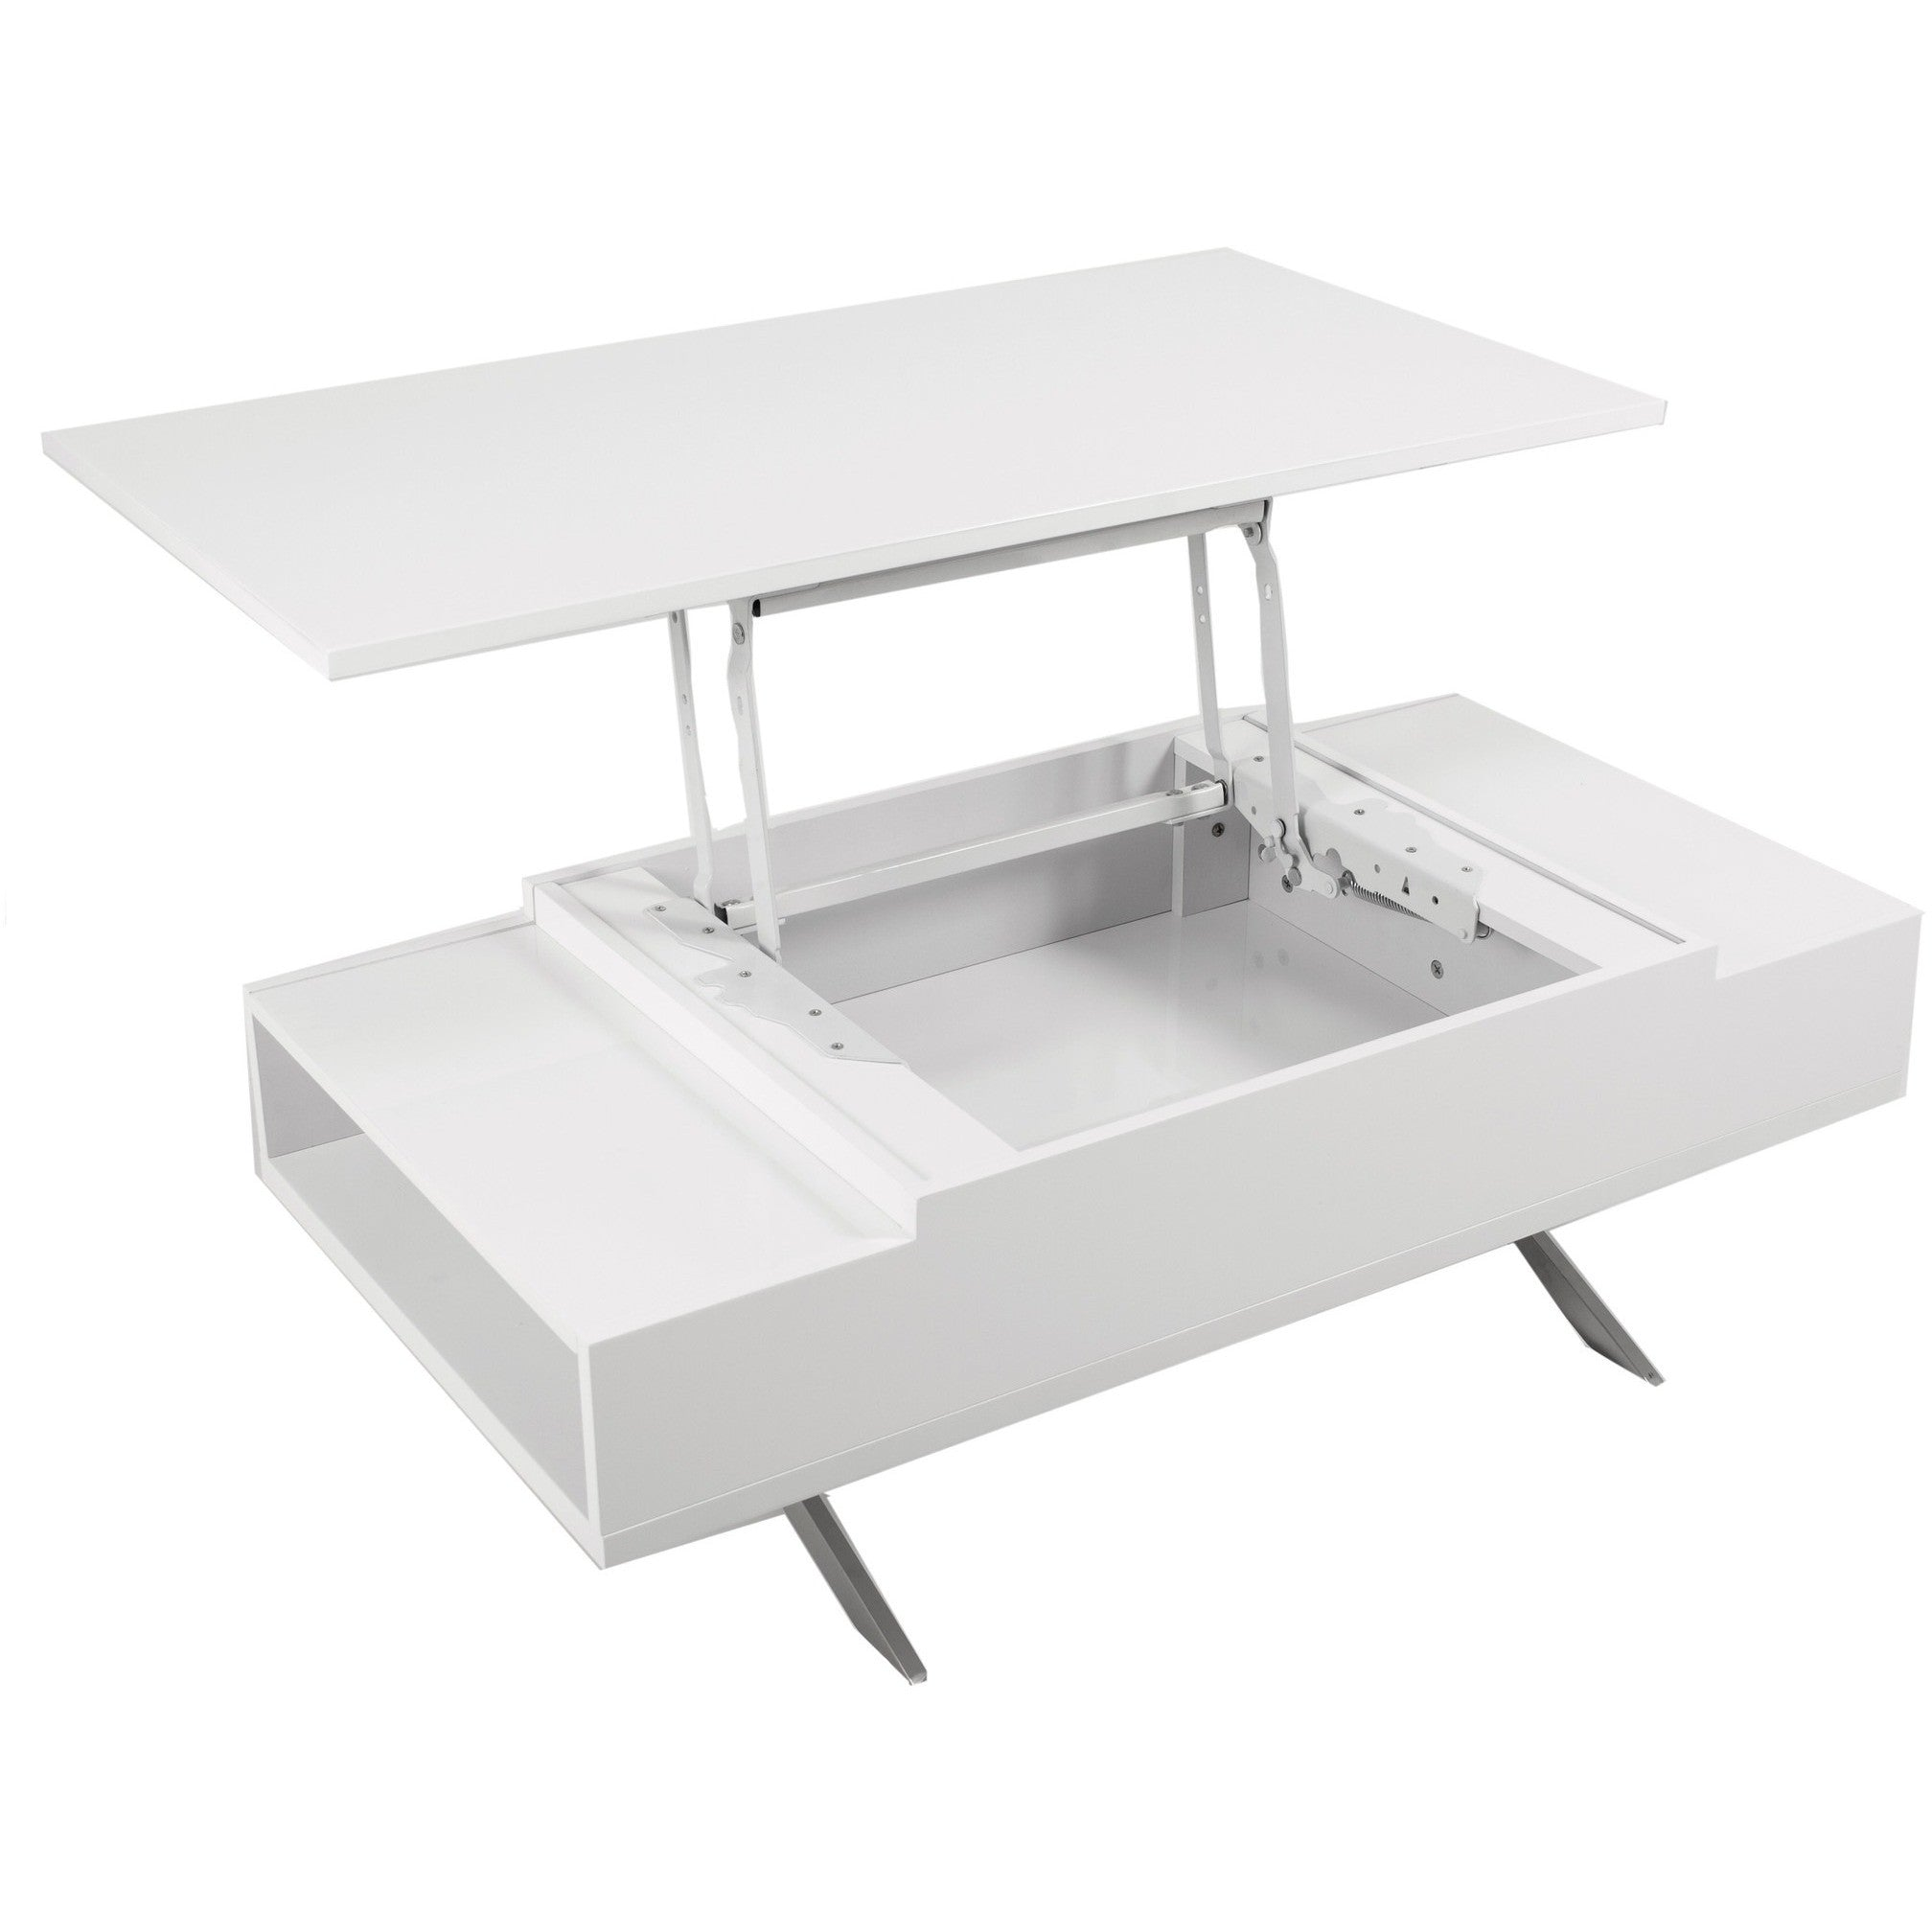 Stelar White Lift Top Rectangular Coffee Table By Matrix Coffee Table Direct